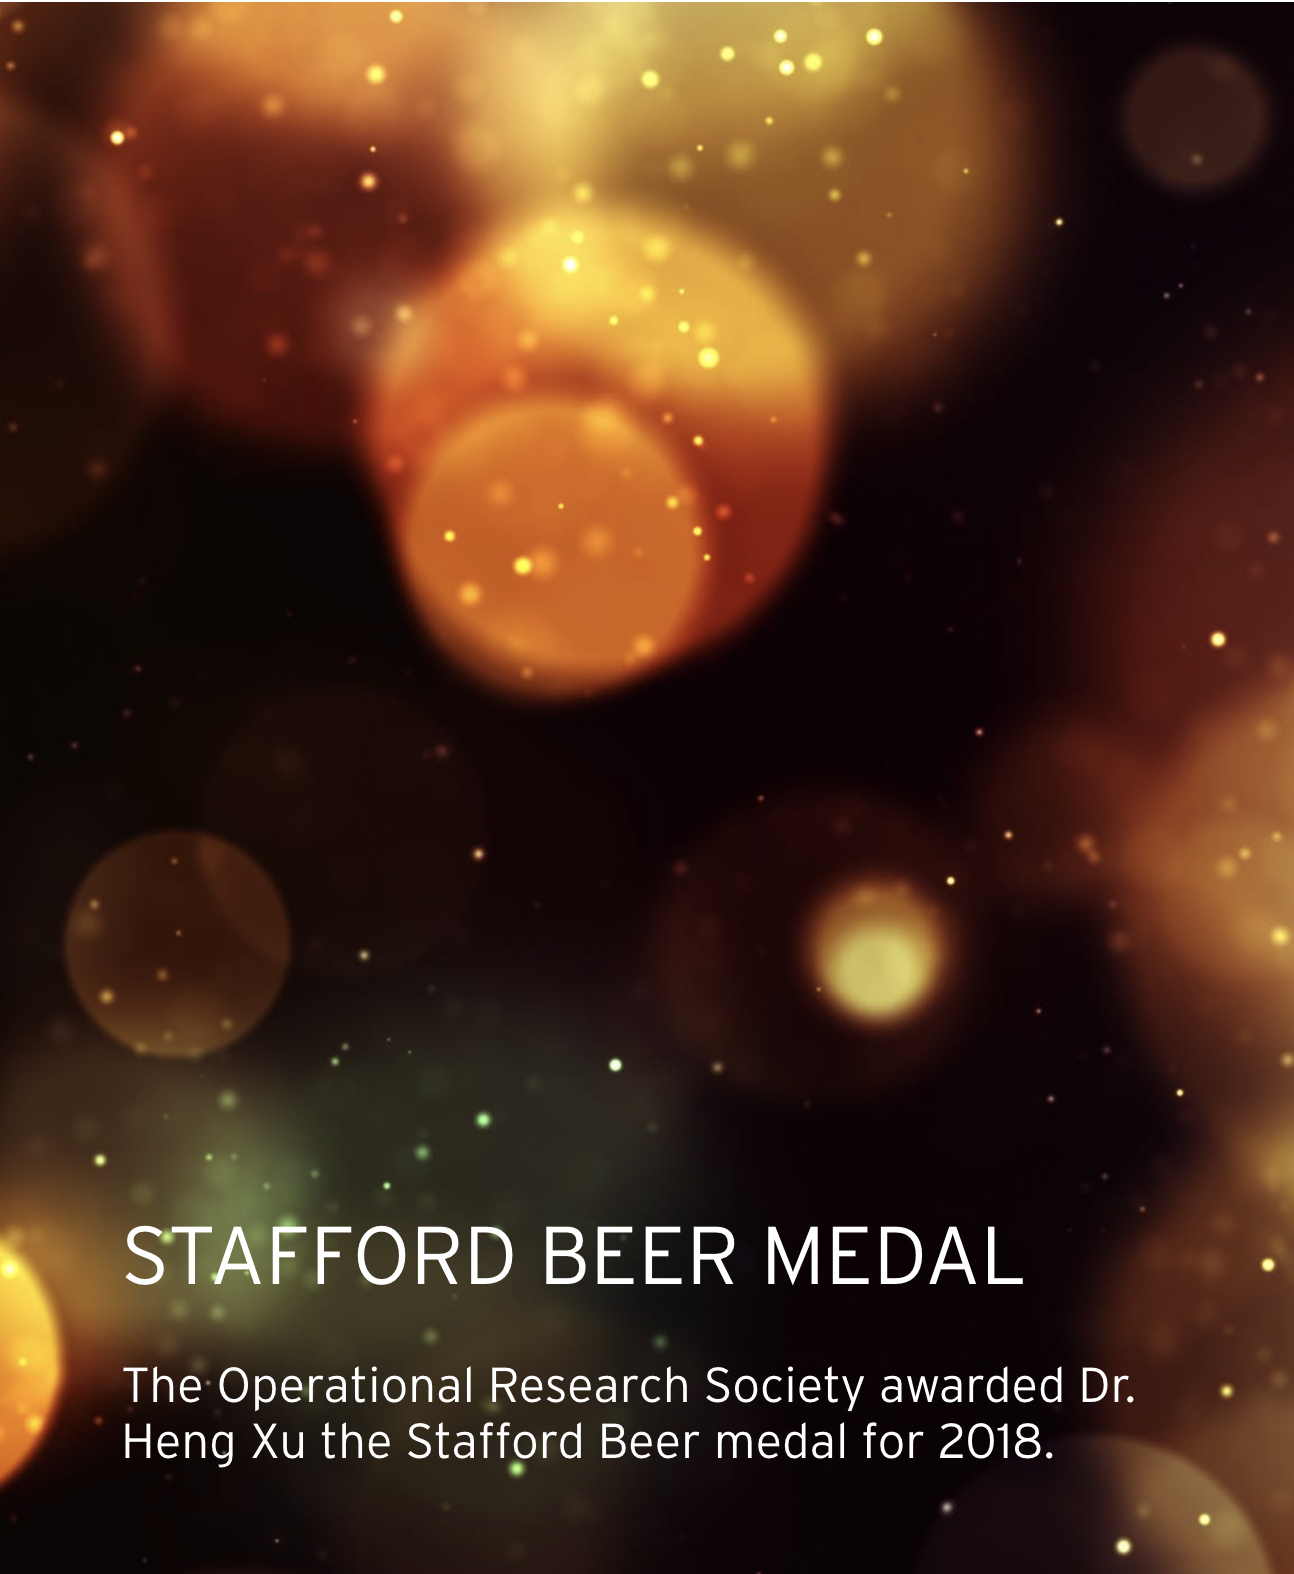 Stafford Beer Medal. The Operational Research Society awarded Dr. Heng Xu the Stafford Beer medal for 2018.